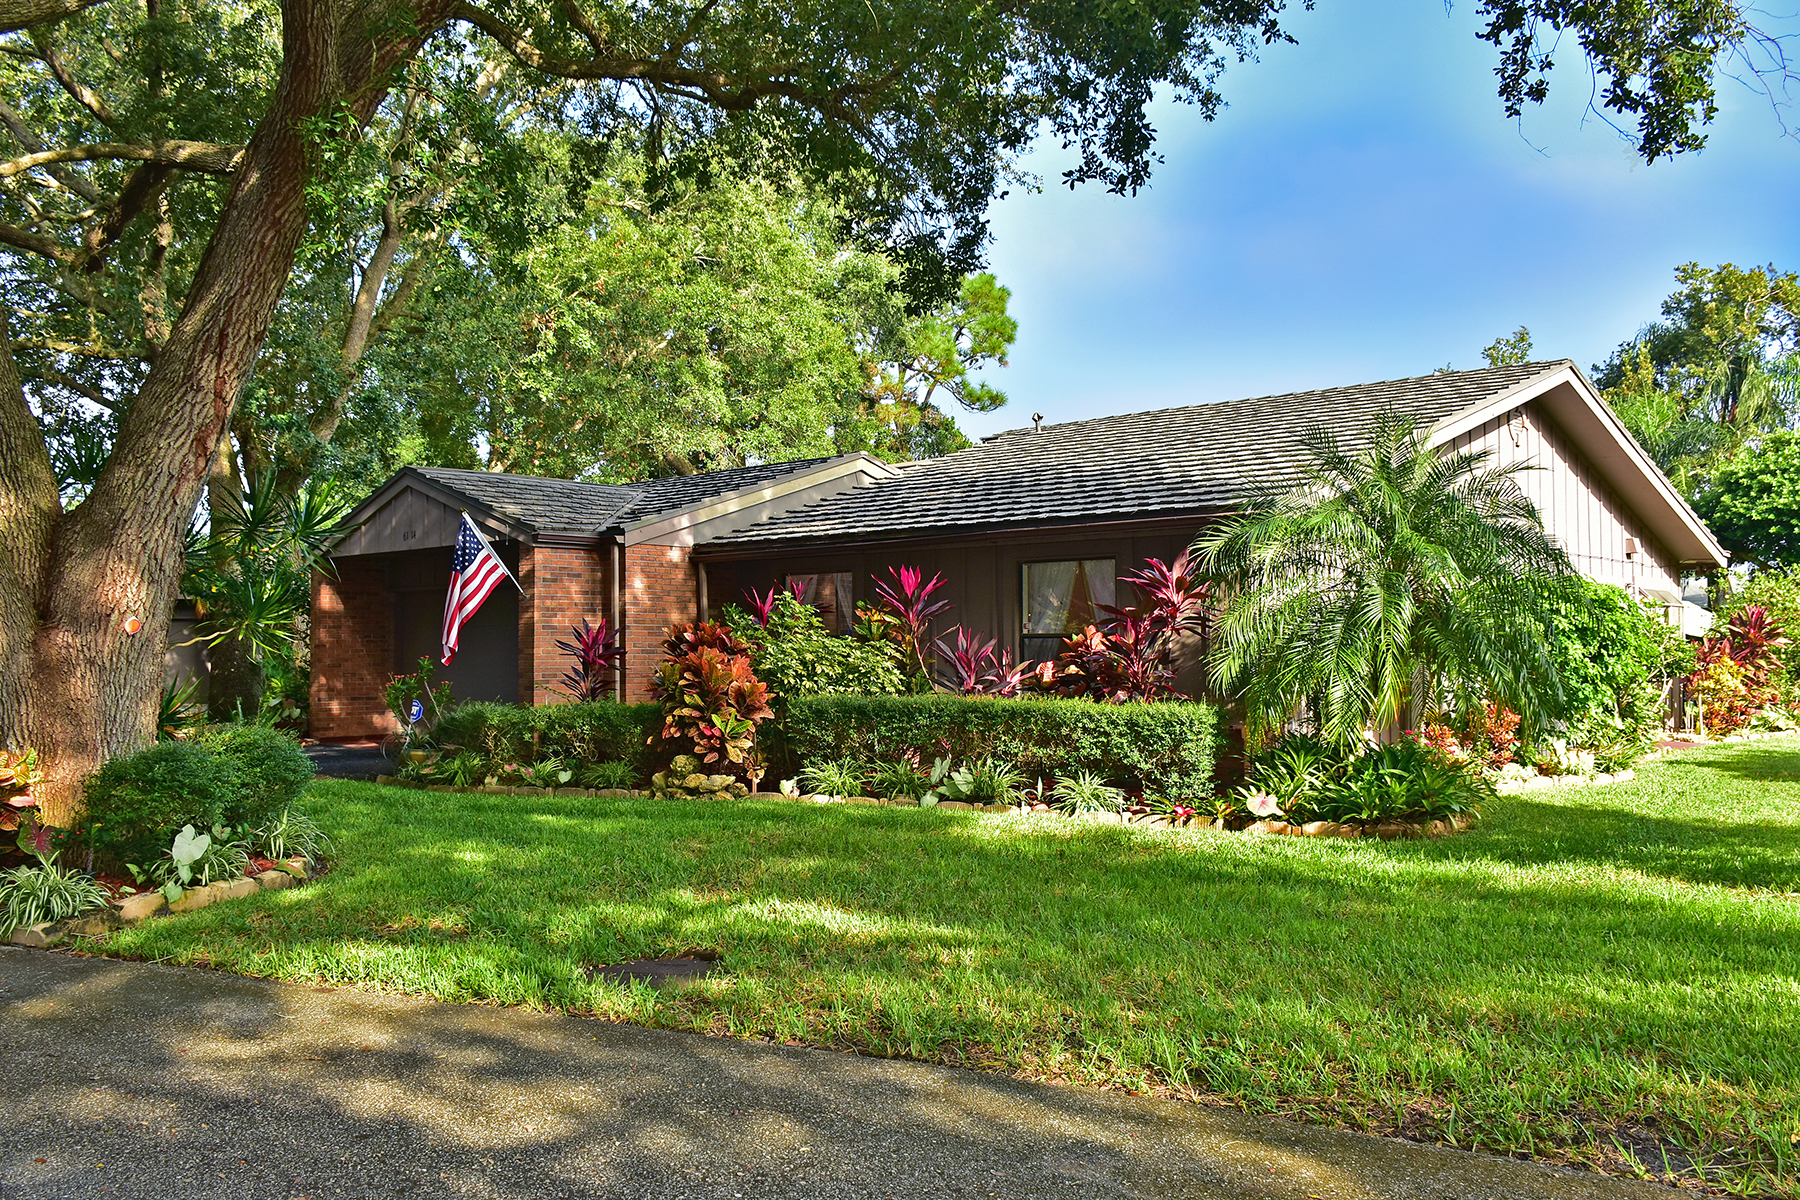 Single Family Home for Sale at THE OAKS 6114 Willow Oak Cir 41 Bradenton, Florida 34209 United States